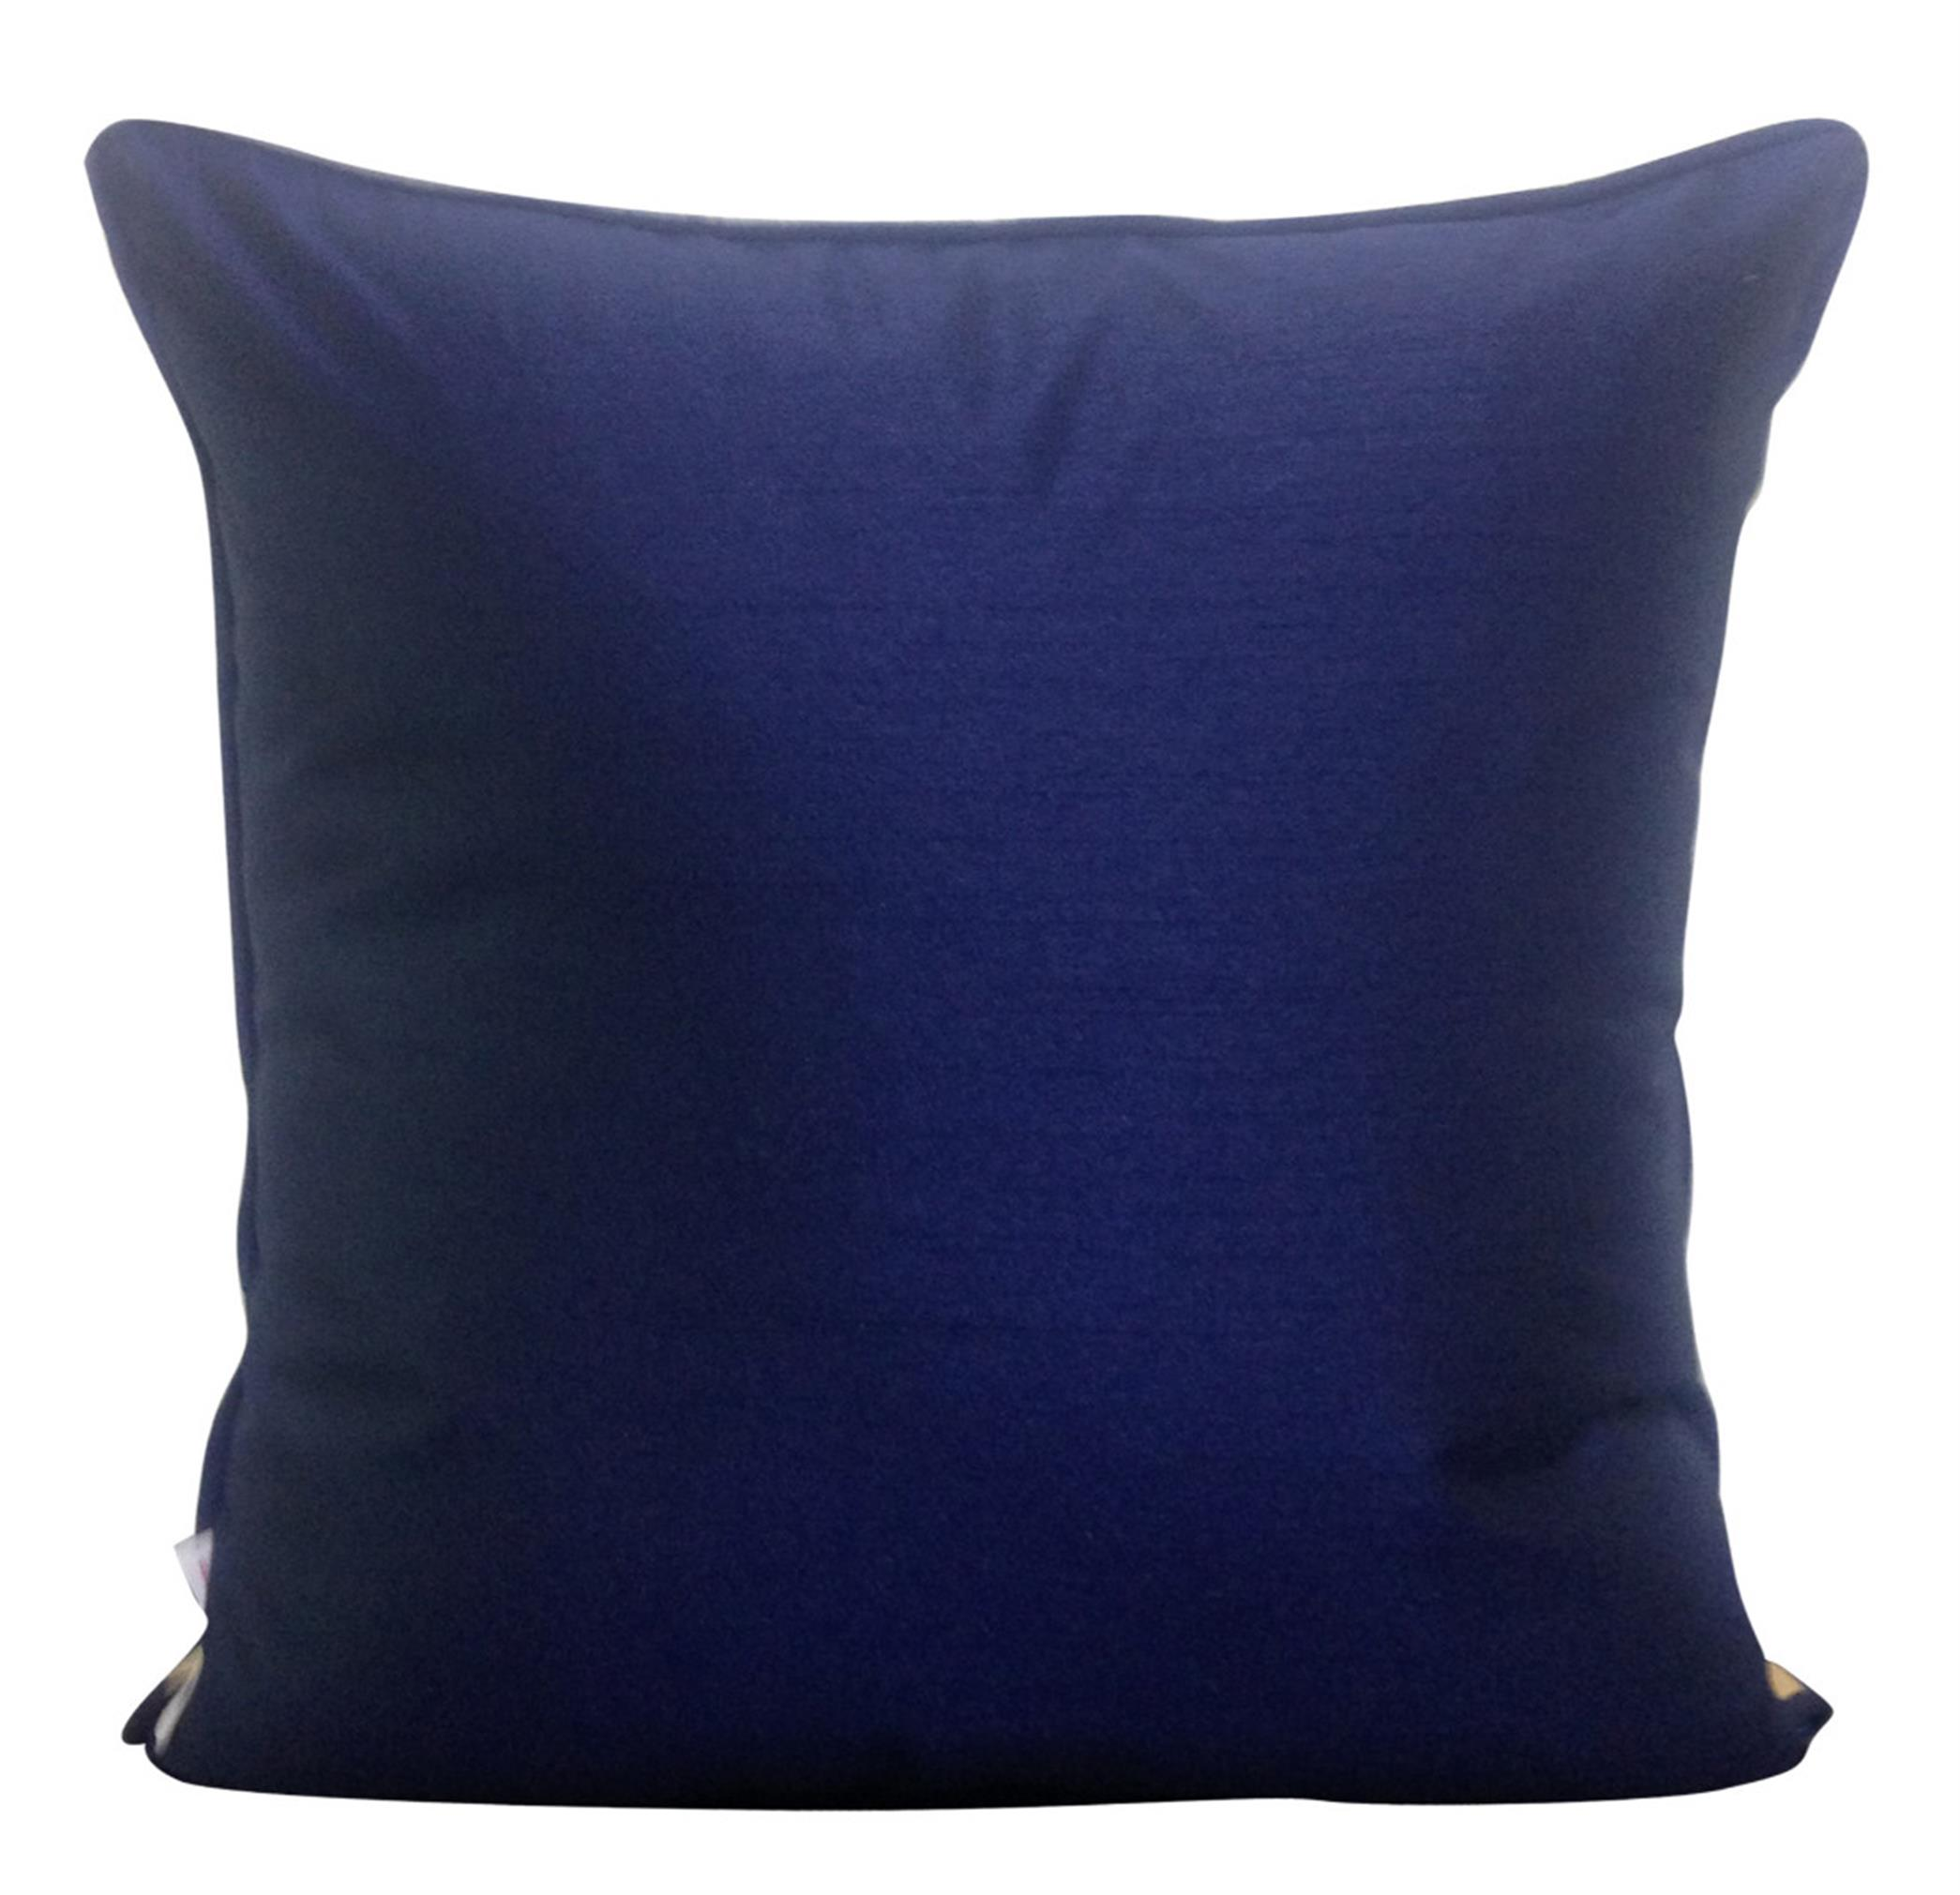 Navy Blue Cushion Cover